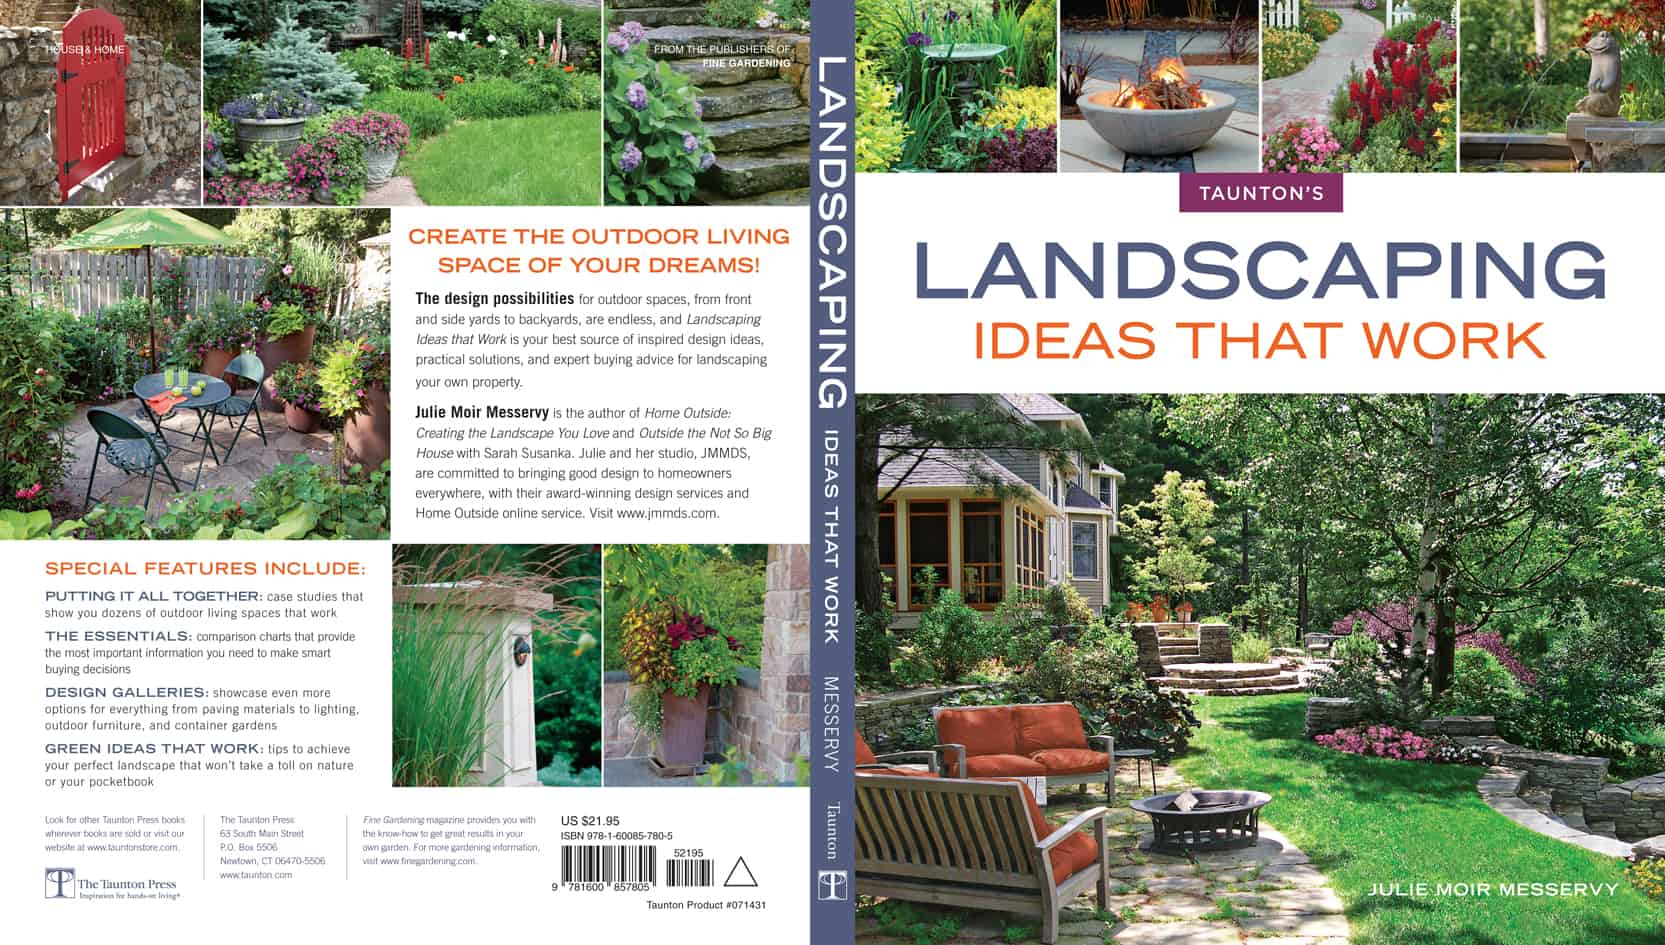 Julie moir messervy design studio landscaping ideas that for Landscape design books